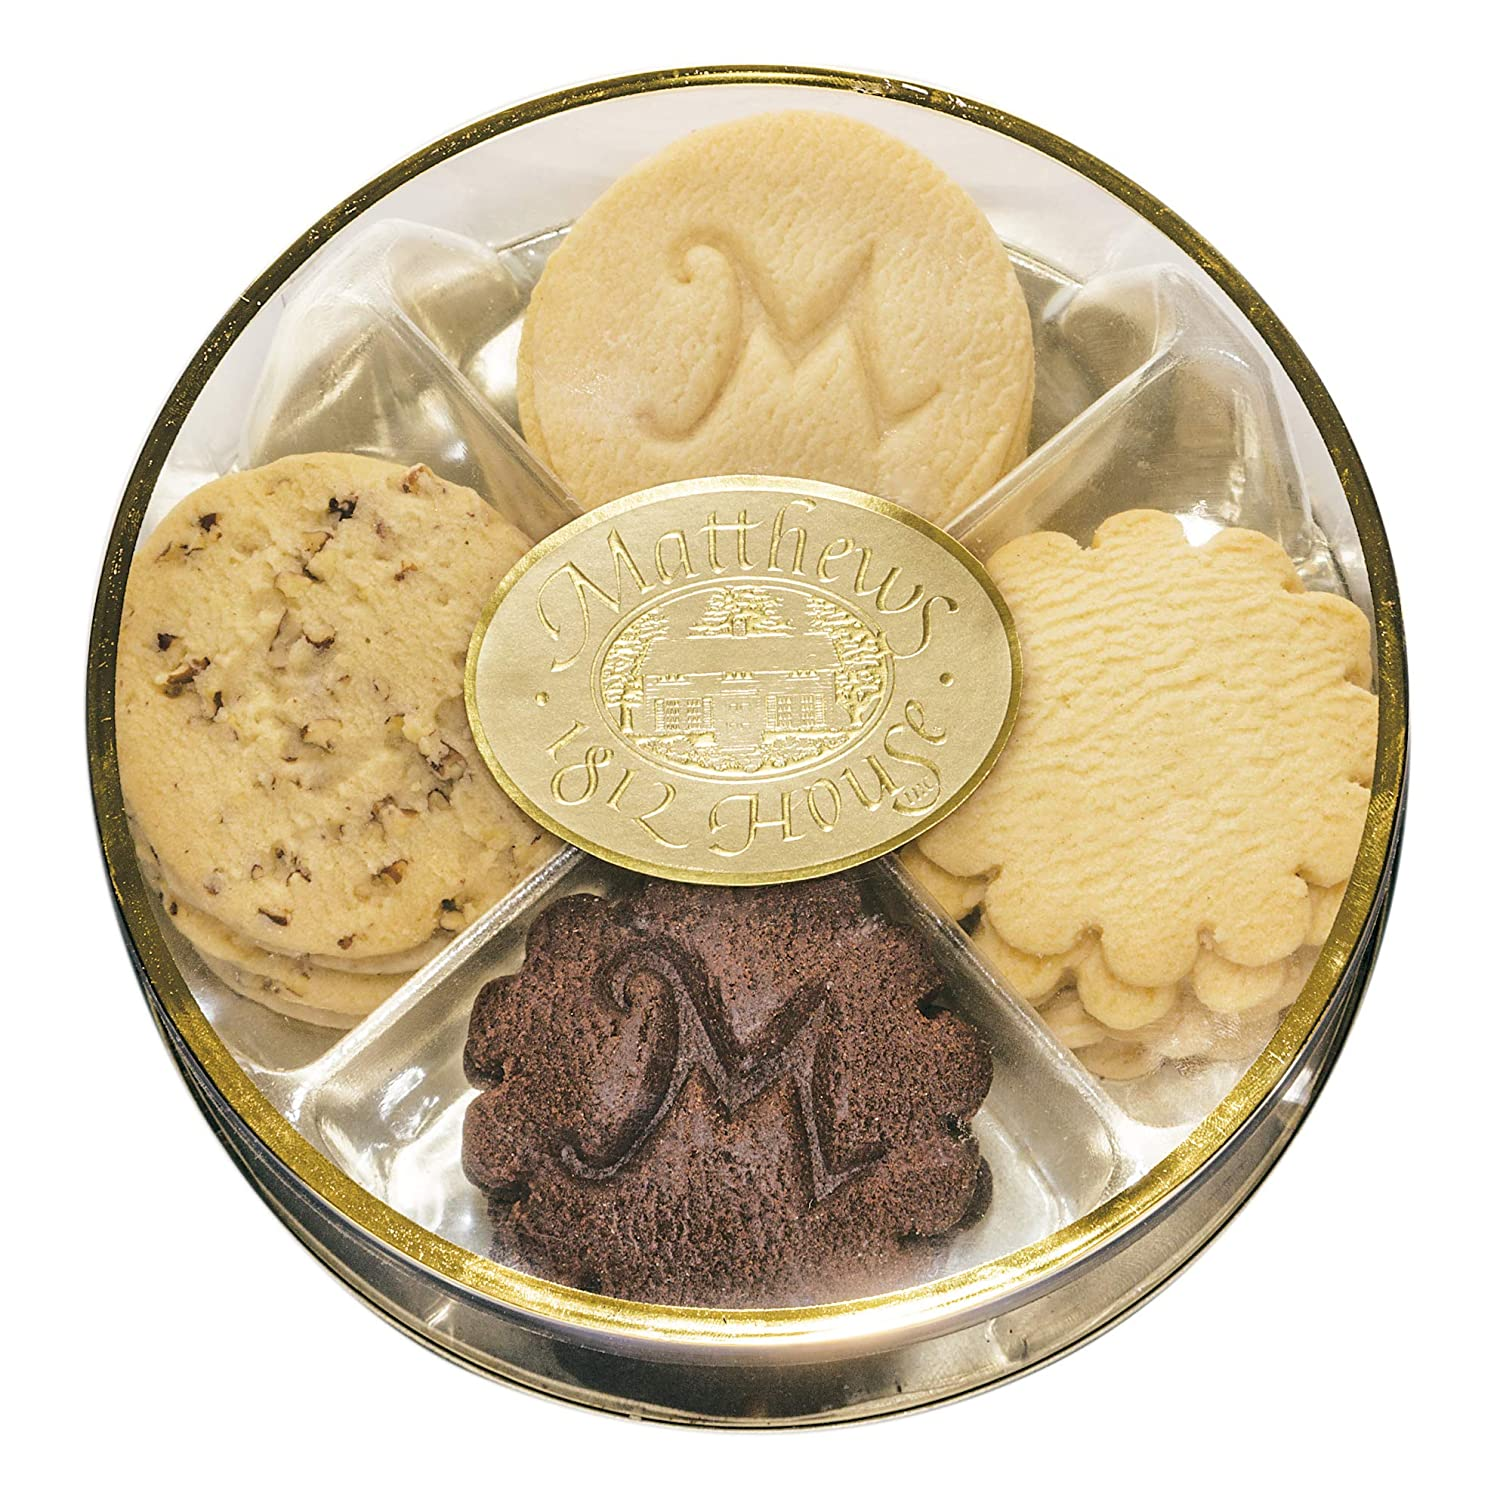 Matthews 1812 House Gourmet Shortbread Cookie Sampler Assortment- 20 Cookies, 4 Flavors: Chocolate, Lemon, Pecan, Traditional in Gift Package; Small Batch, All Natural, Real Butter, No Preservatives.